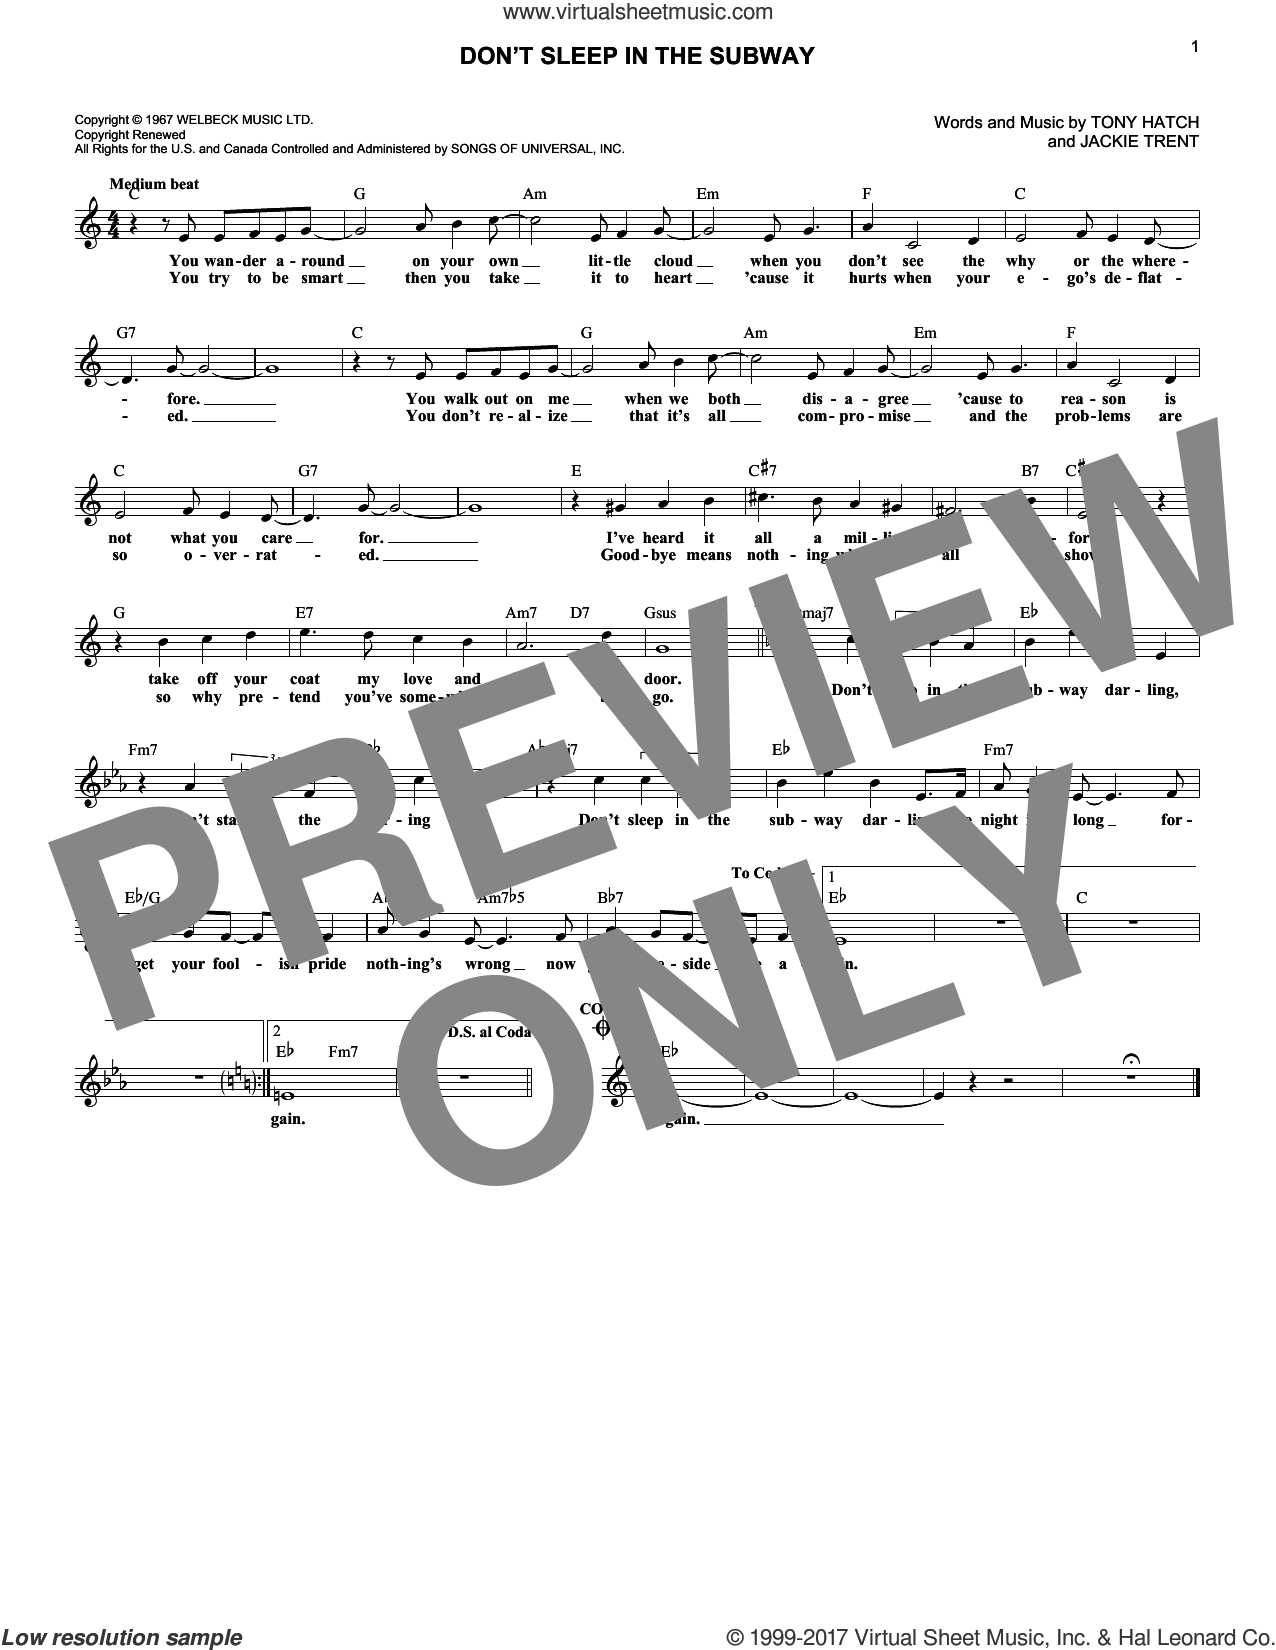 Don't Sleep In The Subway sheet music for voice and other instruments (fake book) by Petula Clark, Jackie Trent and Tony Hatch, intermediate skill level